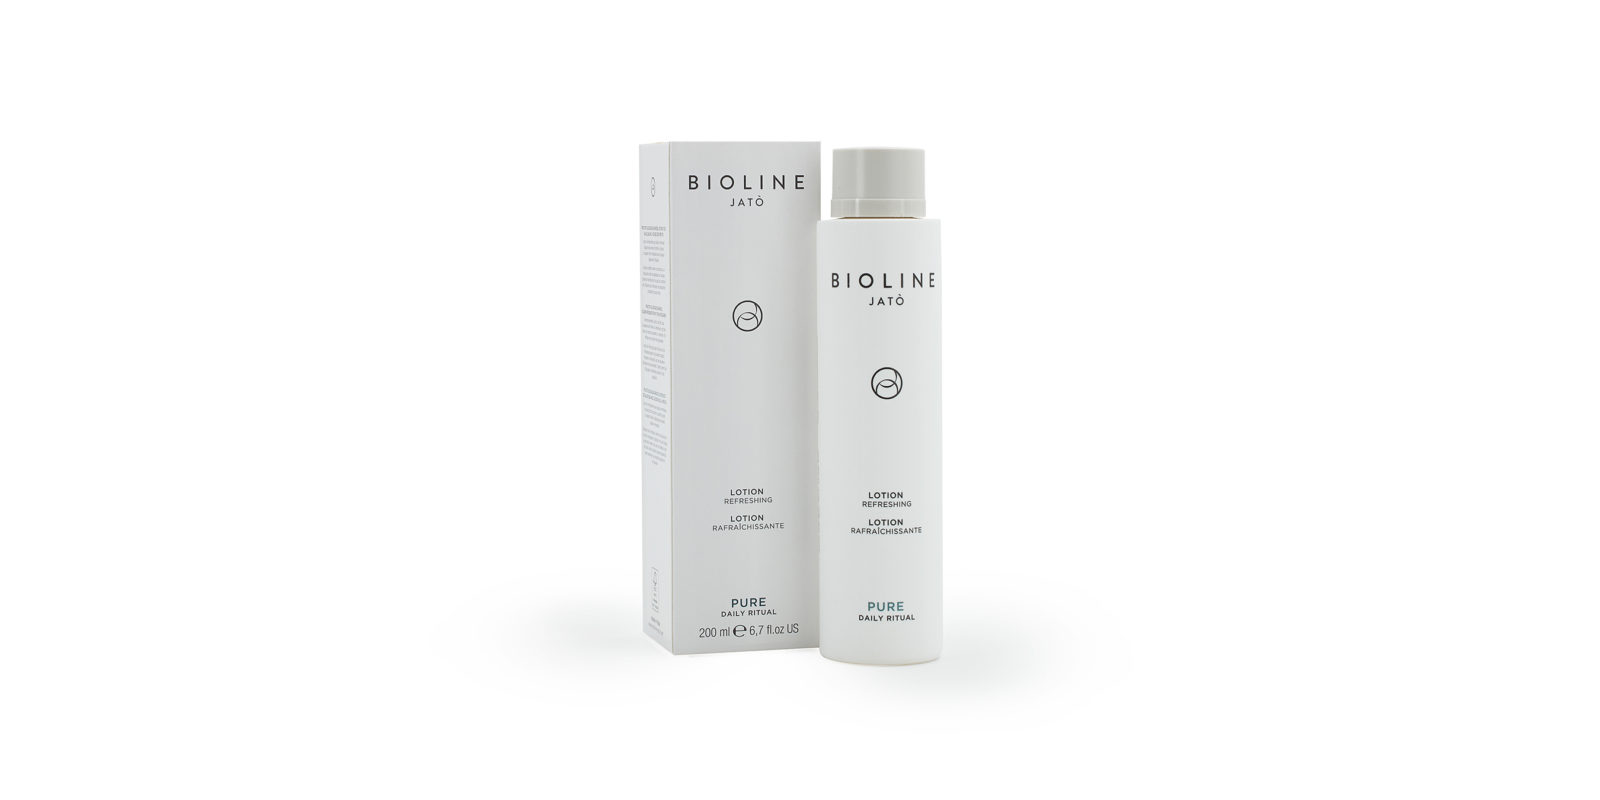 Bioline Jatò Pure Daily Ritual Lotion Refreshing